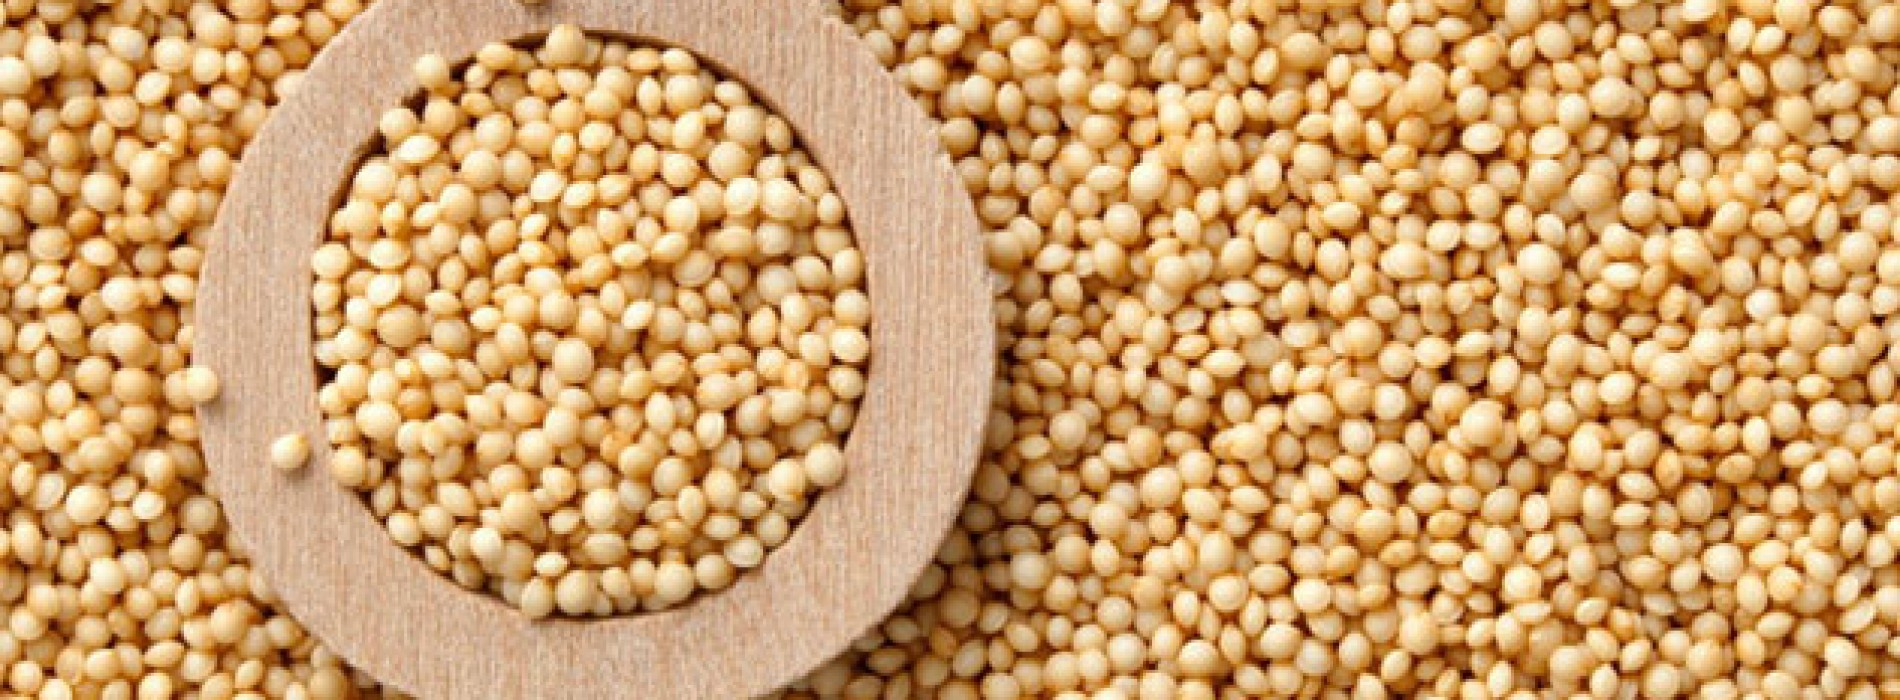 What's So Great About Amaranth?